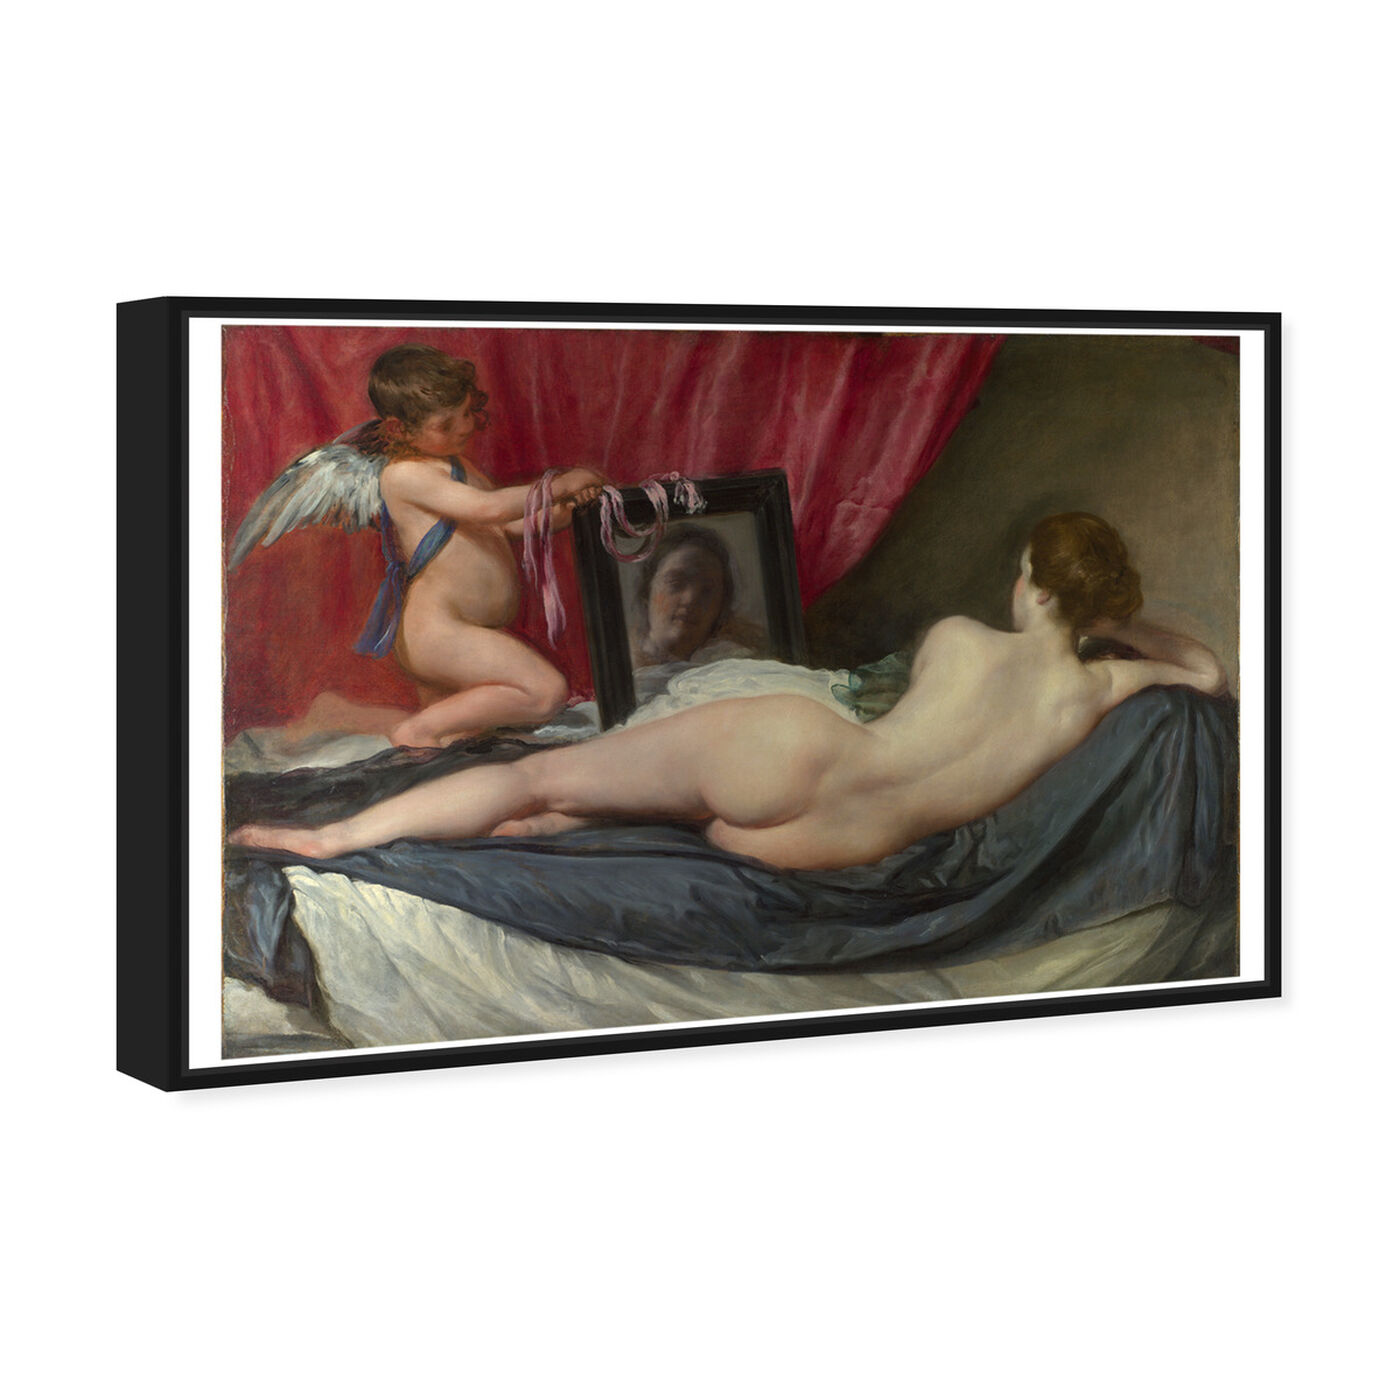 Angled view of Velazquez - Rokeby Venus featuring classic and figurative and nudes art.